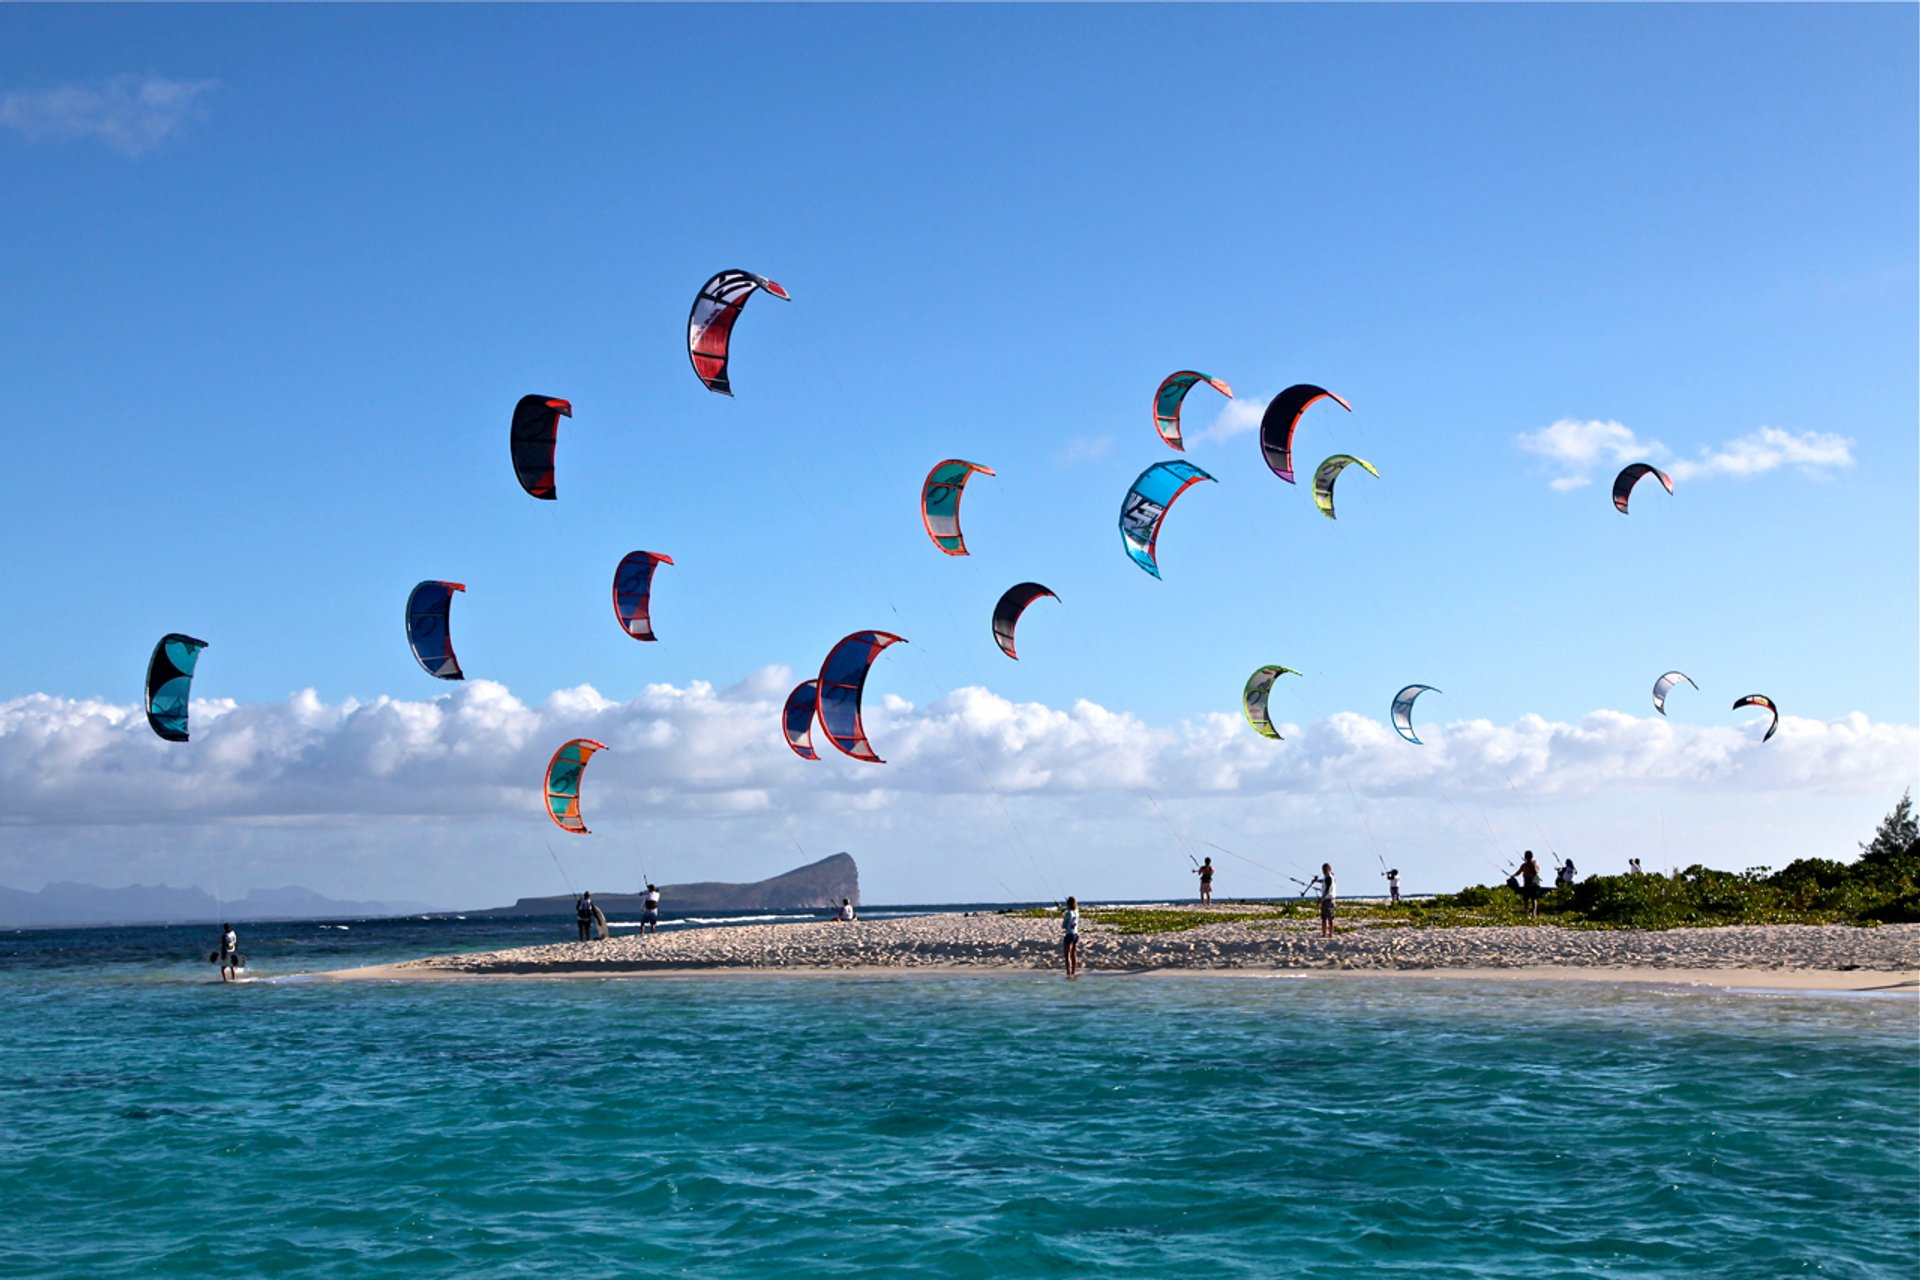 Kiteival in Mauritius 2019 - Best Time